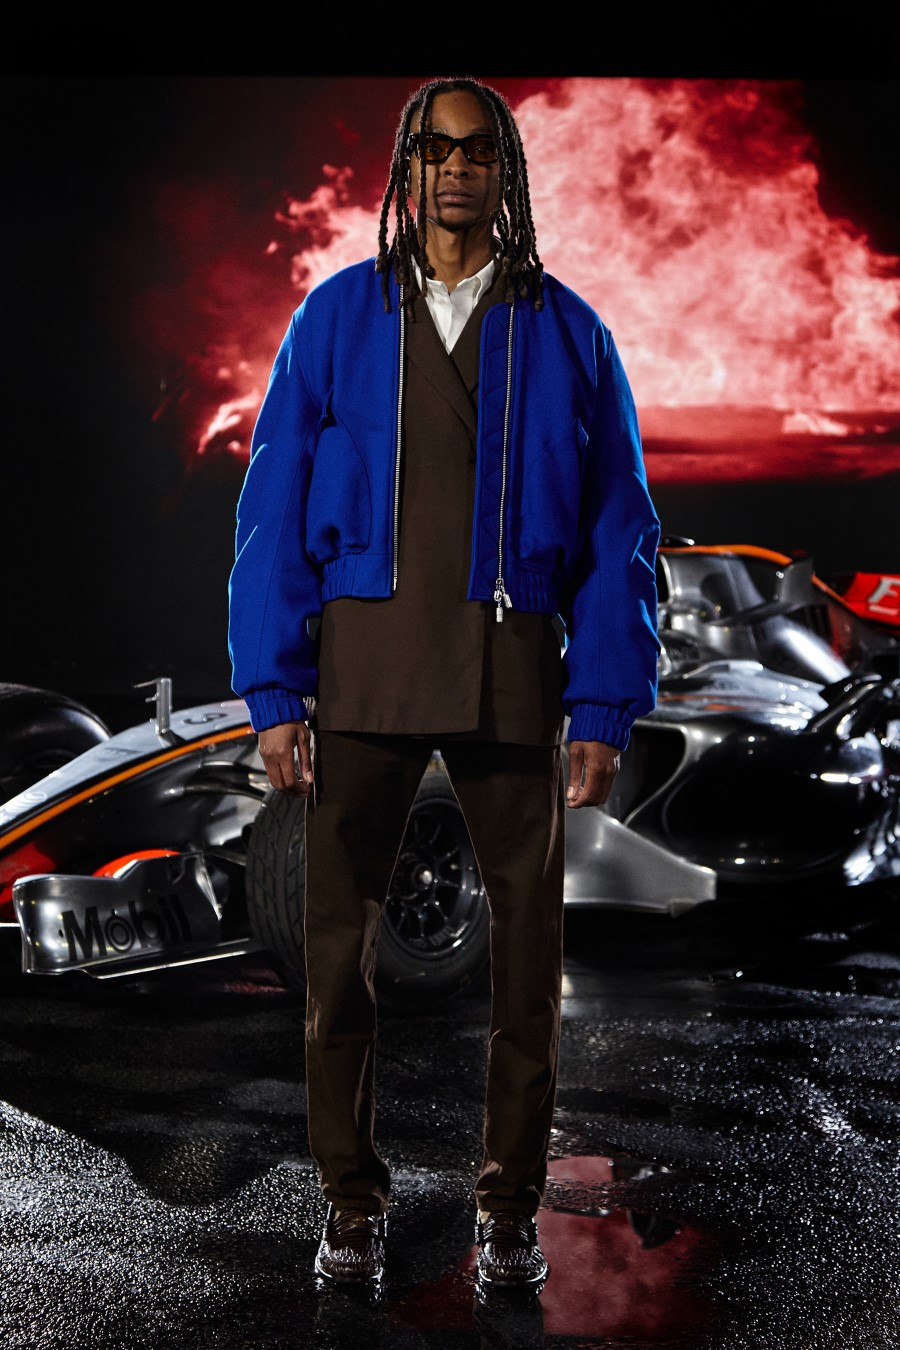 Rhude Fall Winter 2021 - Paris Fashion Week Men's